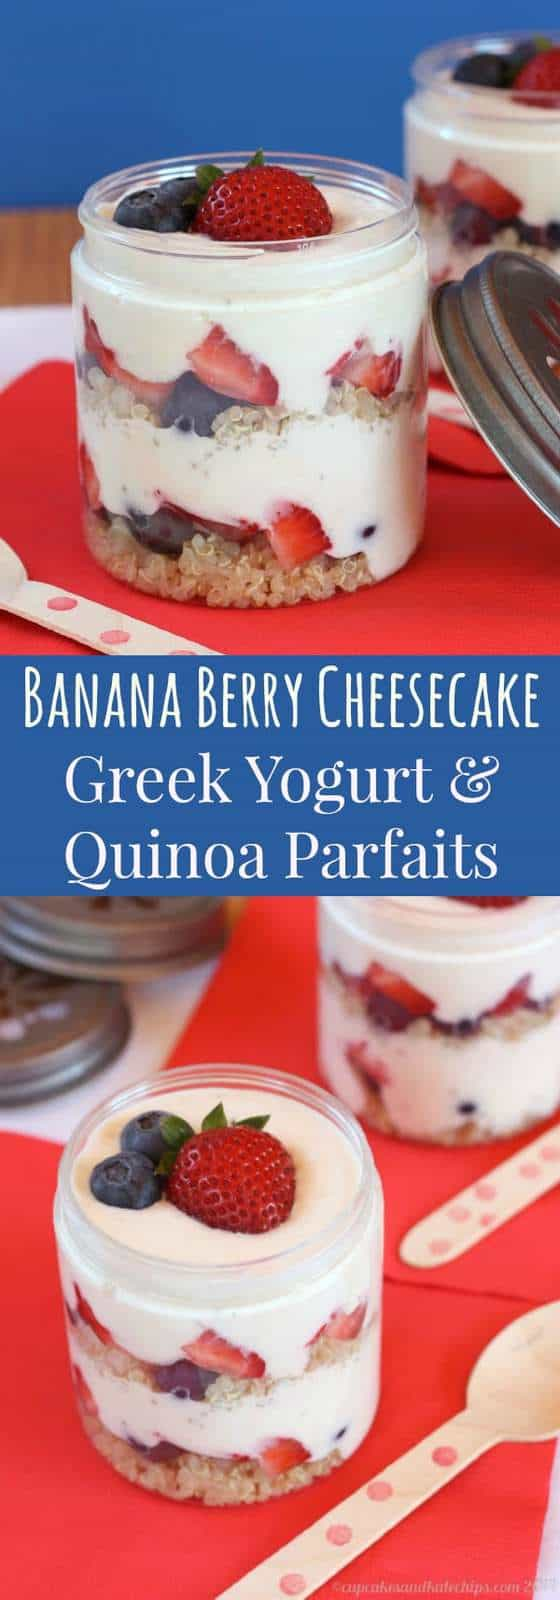 Banana Berry Cheesecake Greek Yogurt & Quinoa Parfaits - a fun, healthy breakfast, snack or dessert! | cupcakesandkalechips.com | gluten free, no sugar added